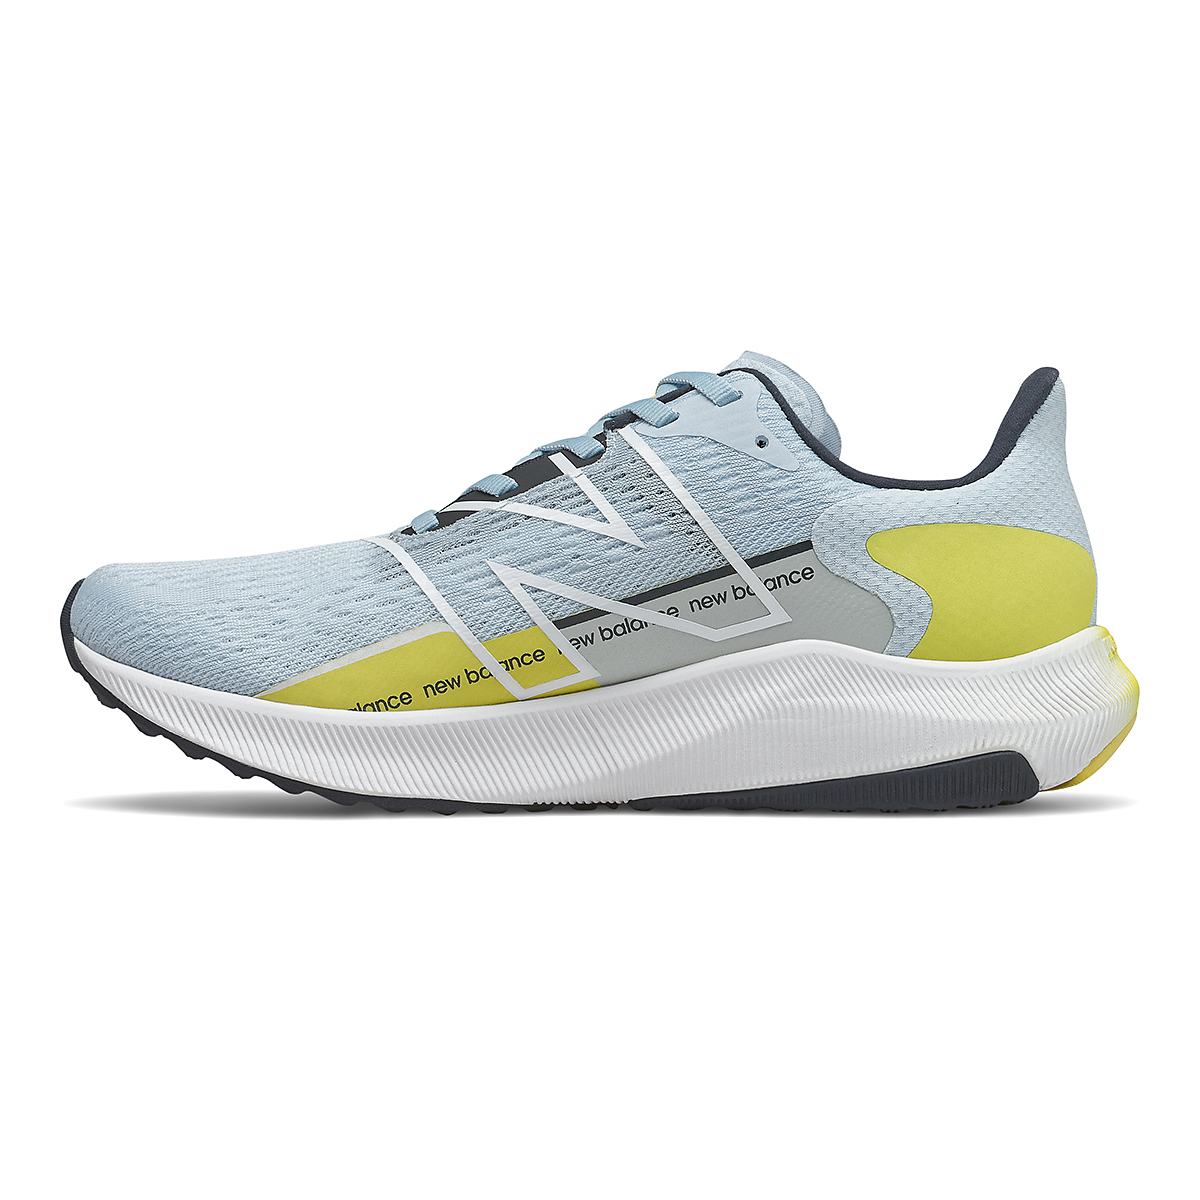 Women's New Balance Fuelcell Propel V2 Running Shoe - Color: Uv Glo/First Light/Eclipse - Size: 5 - Width: Regular, Uv Glo/First Light/Eclipse, large, image 2